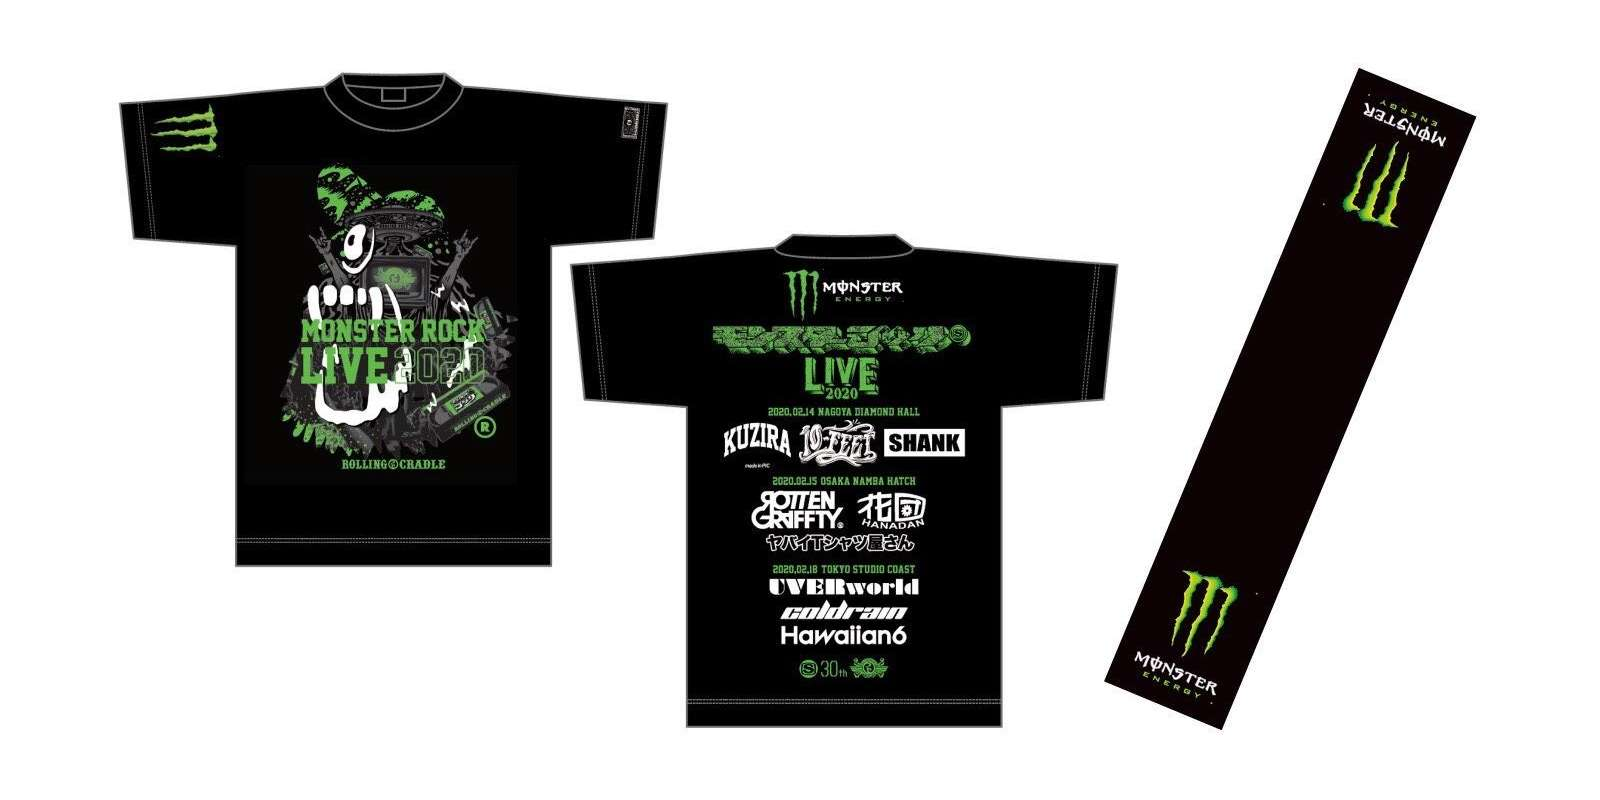 image for promotion, T-shirt and towel